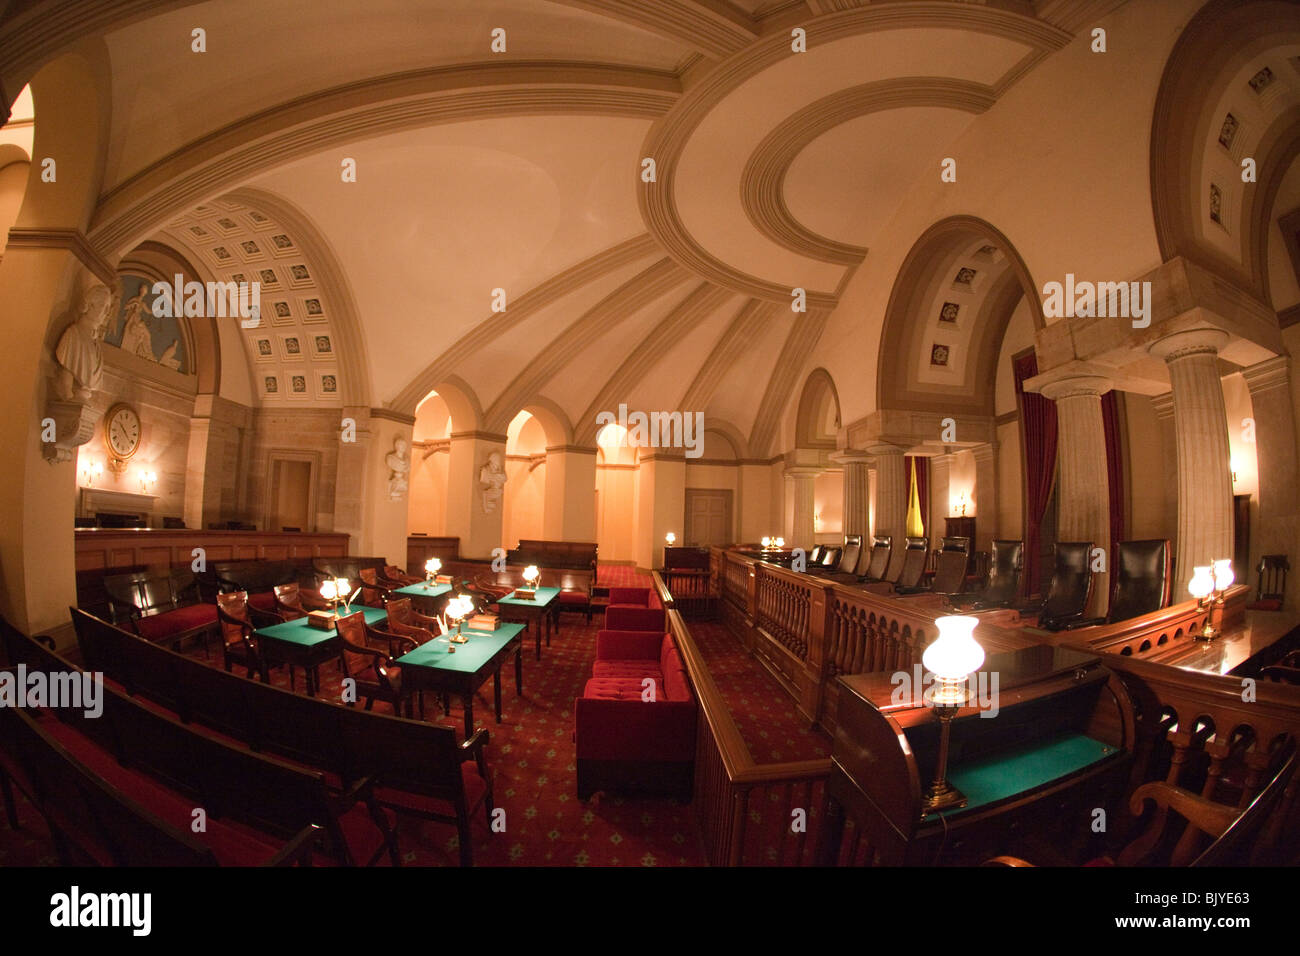 This room in the U.S. Capitol - the Old Supreme Court Chamber - housed the U.S. Supreme Court until 1935. - Stock Image